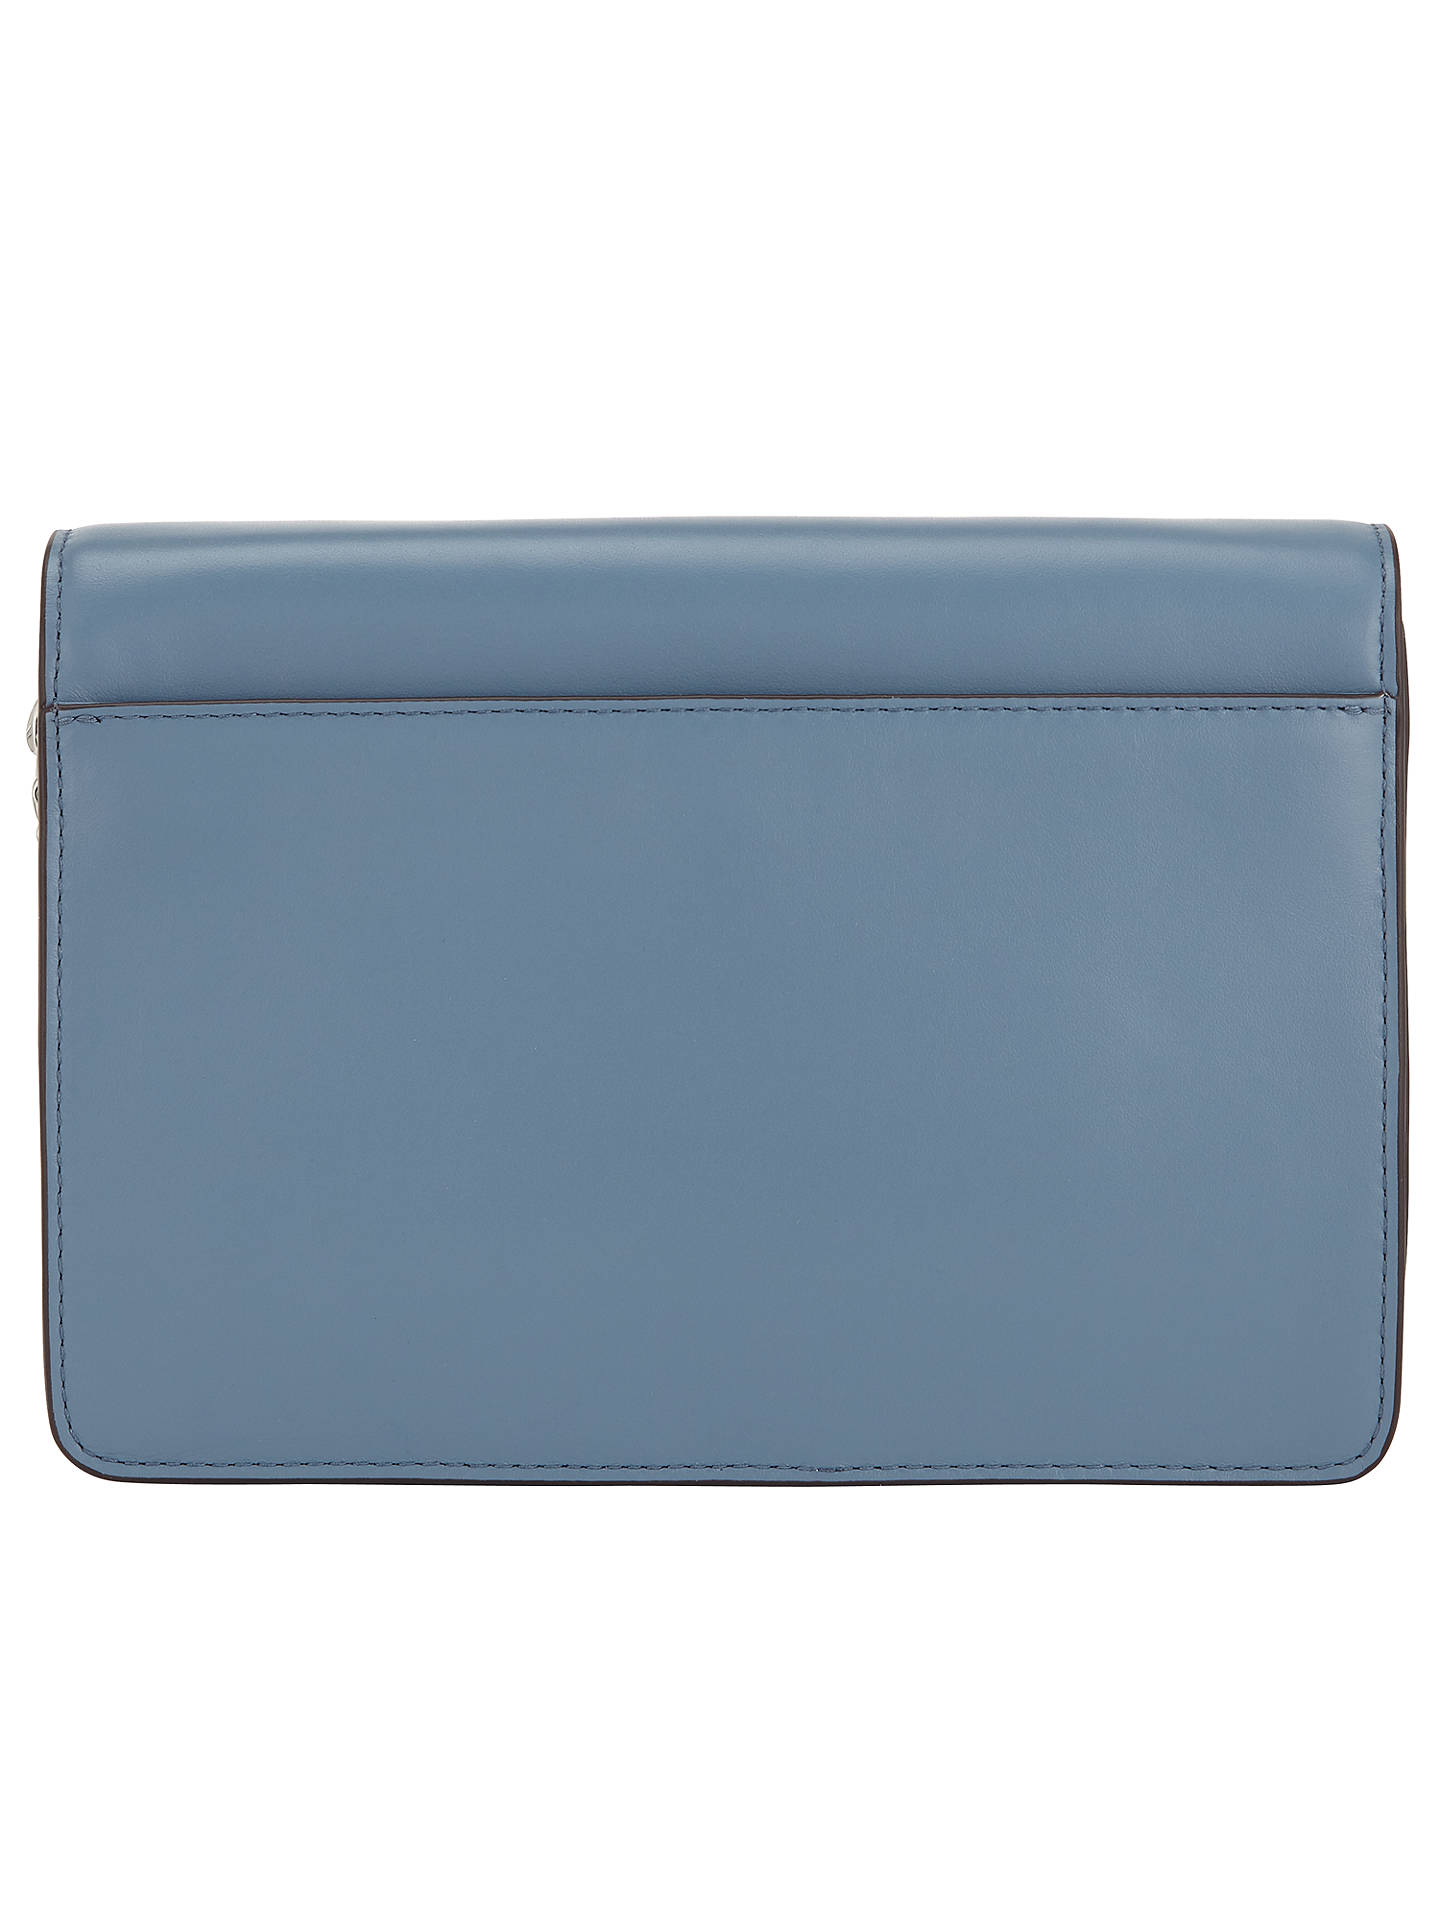 BuyMICHAEL Michael Kors Daniela Large Leather Across Body Purse, Denim Online at johnlewis.com